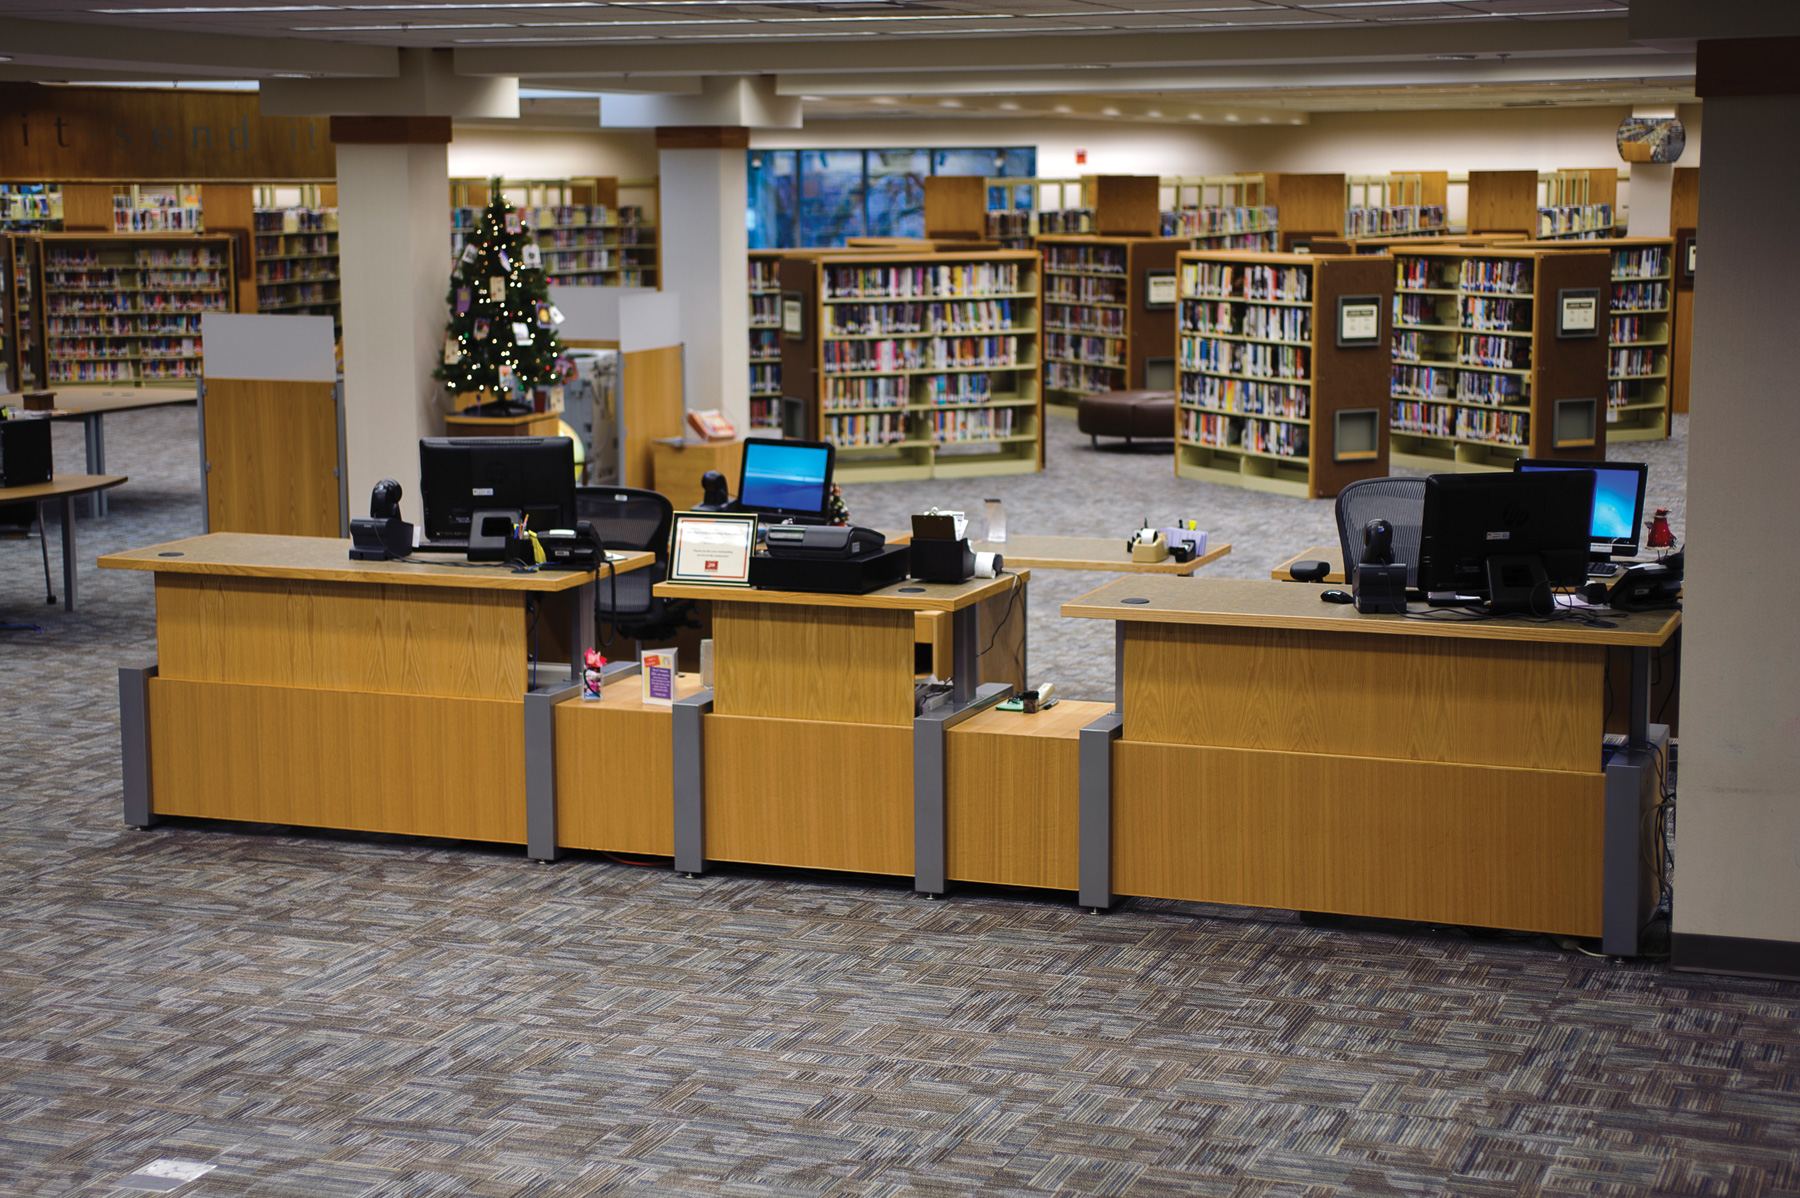 Plainfield-Guilford Township Public Library - Ideas & Inspiration from Demco